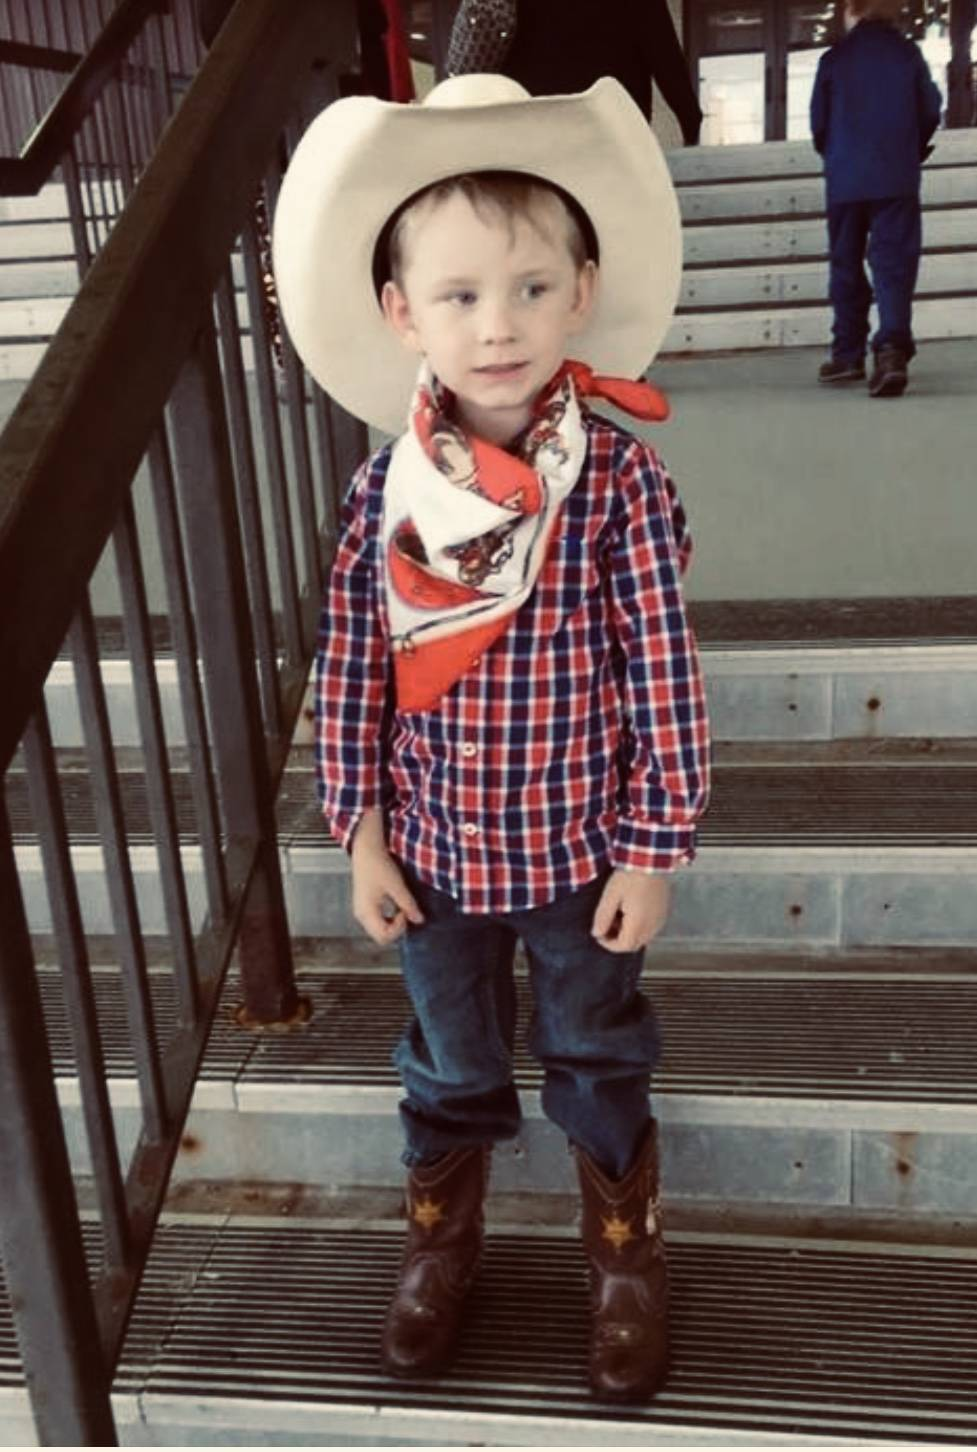 Hunter the cowboy - Halloween 2018